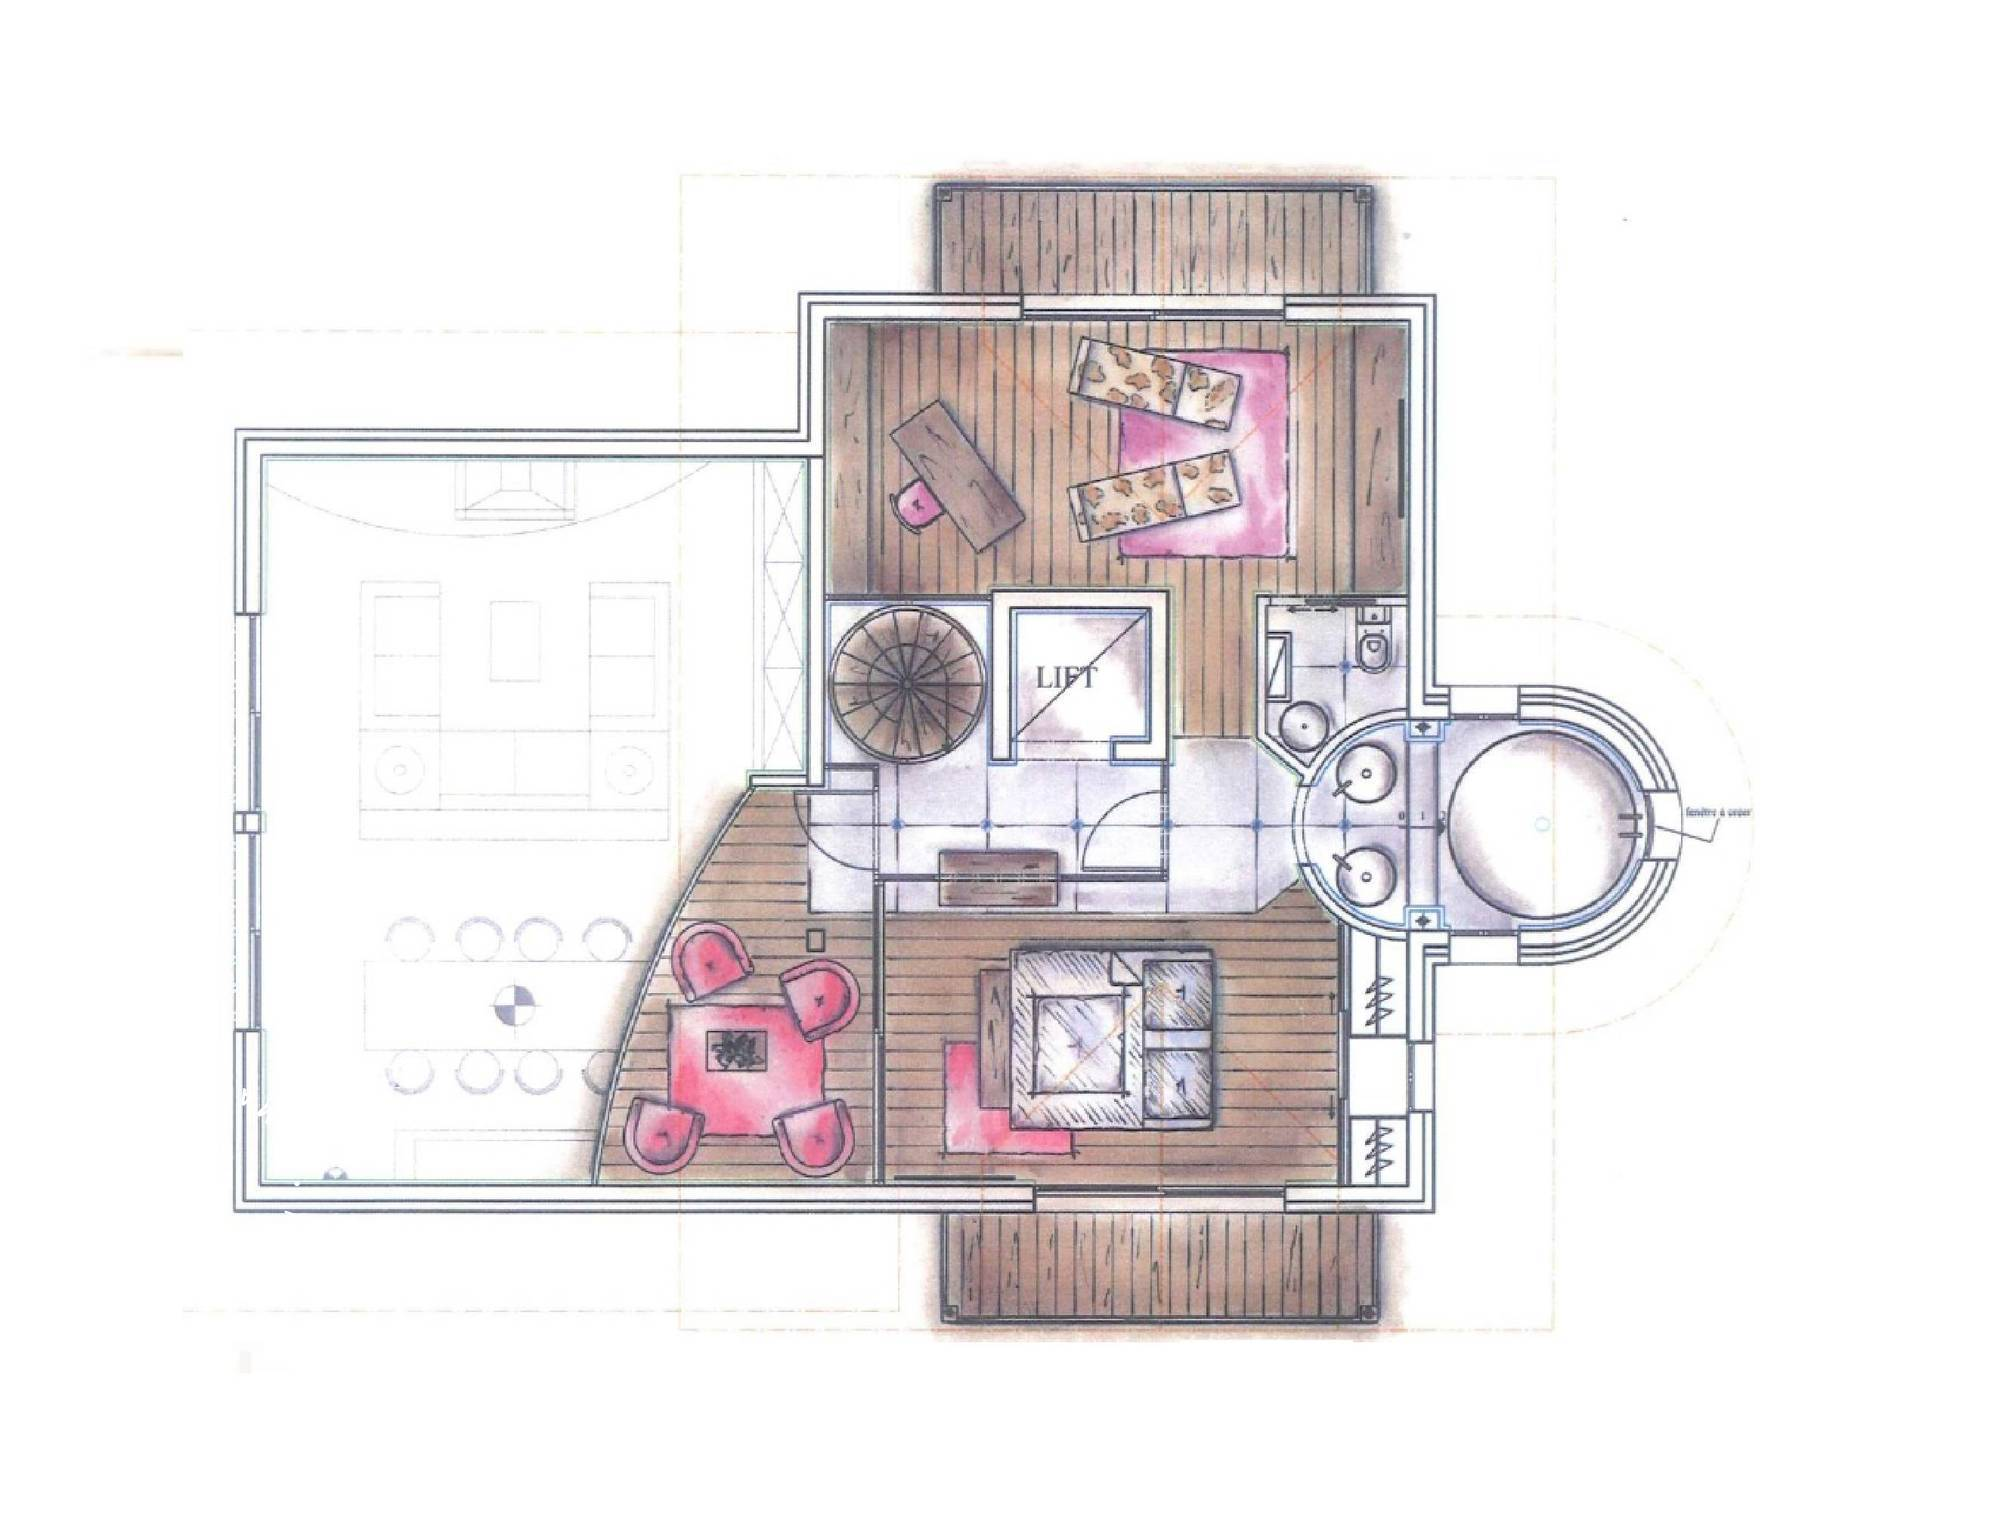 Chalet Eglantier Courchevel Floor Plan 4